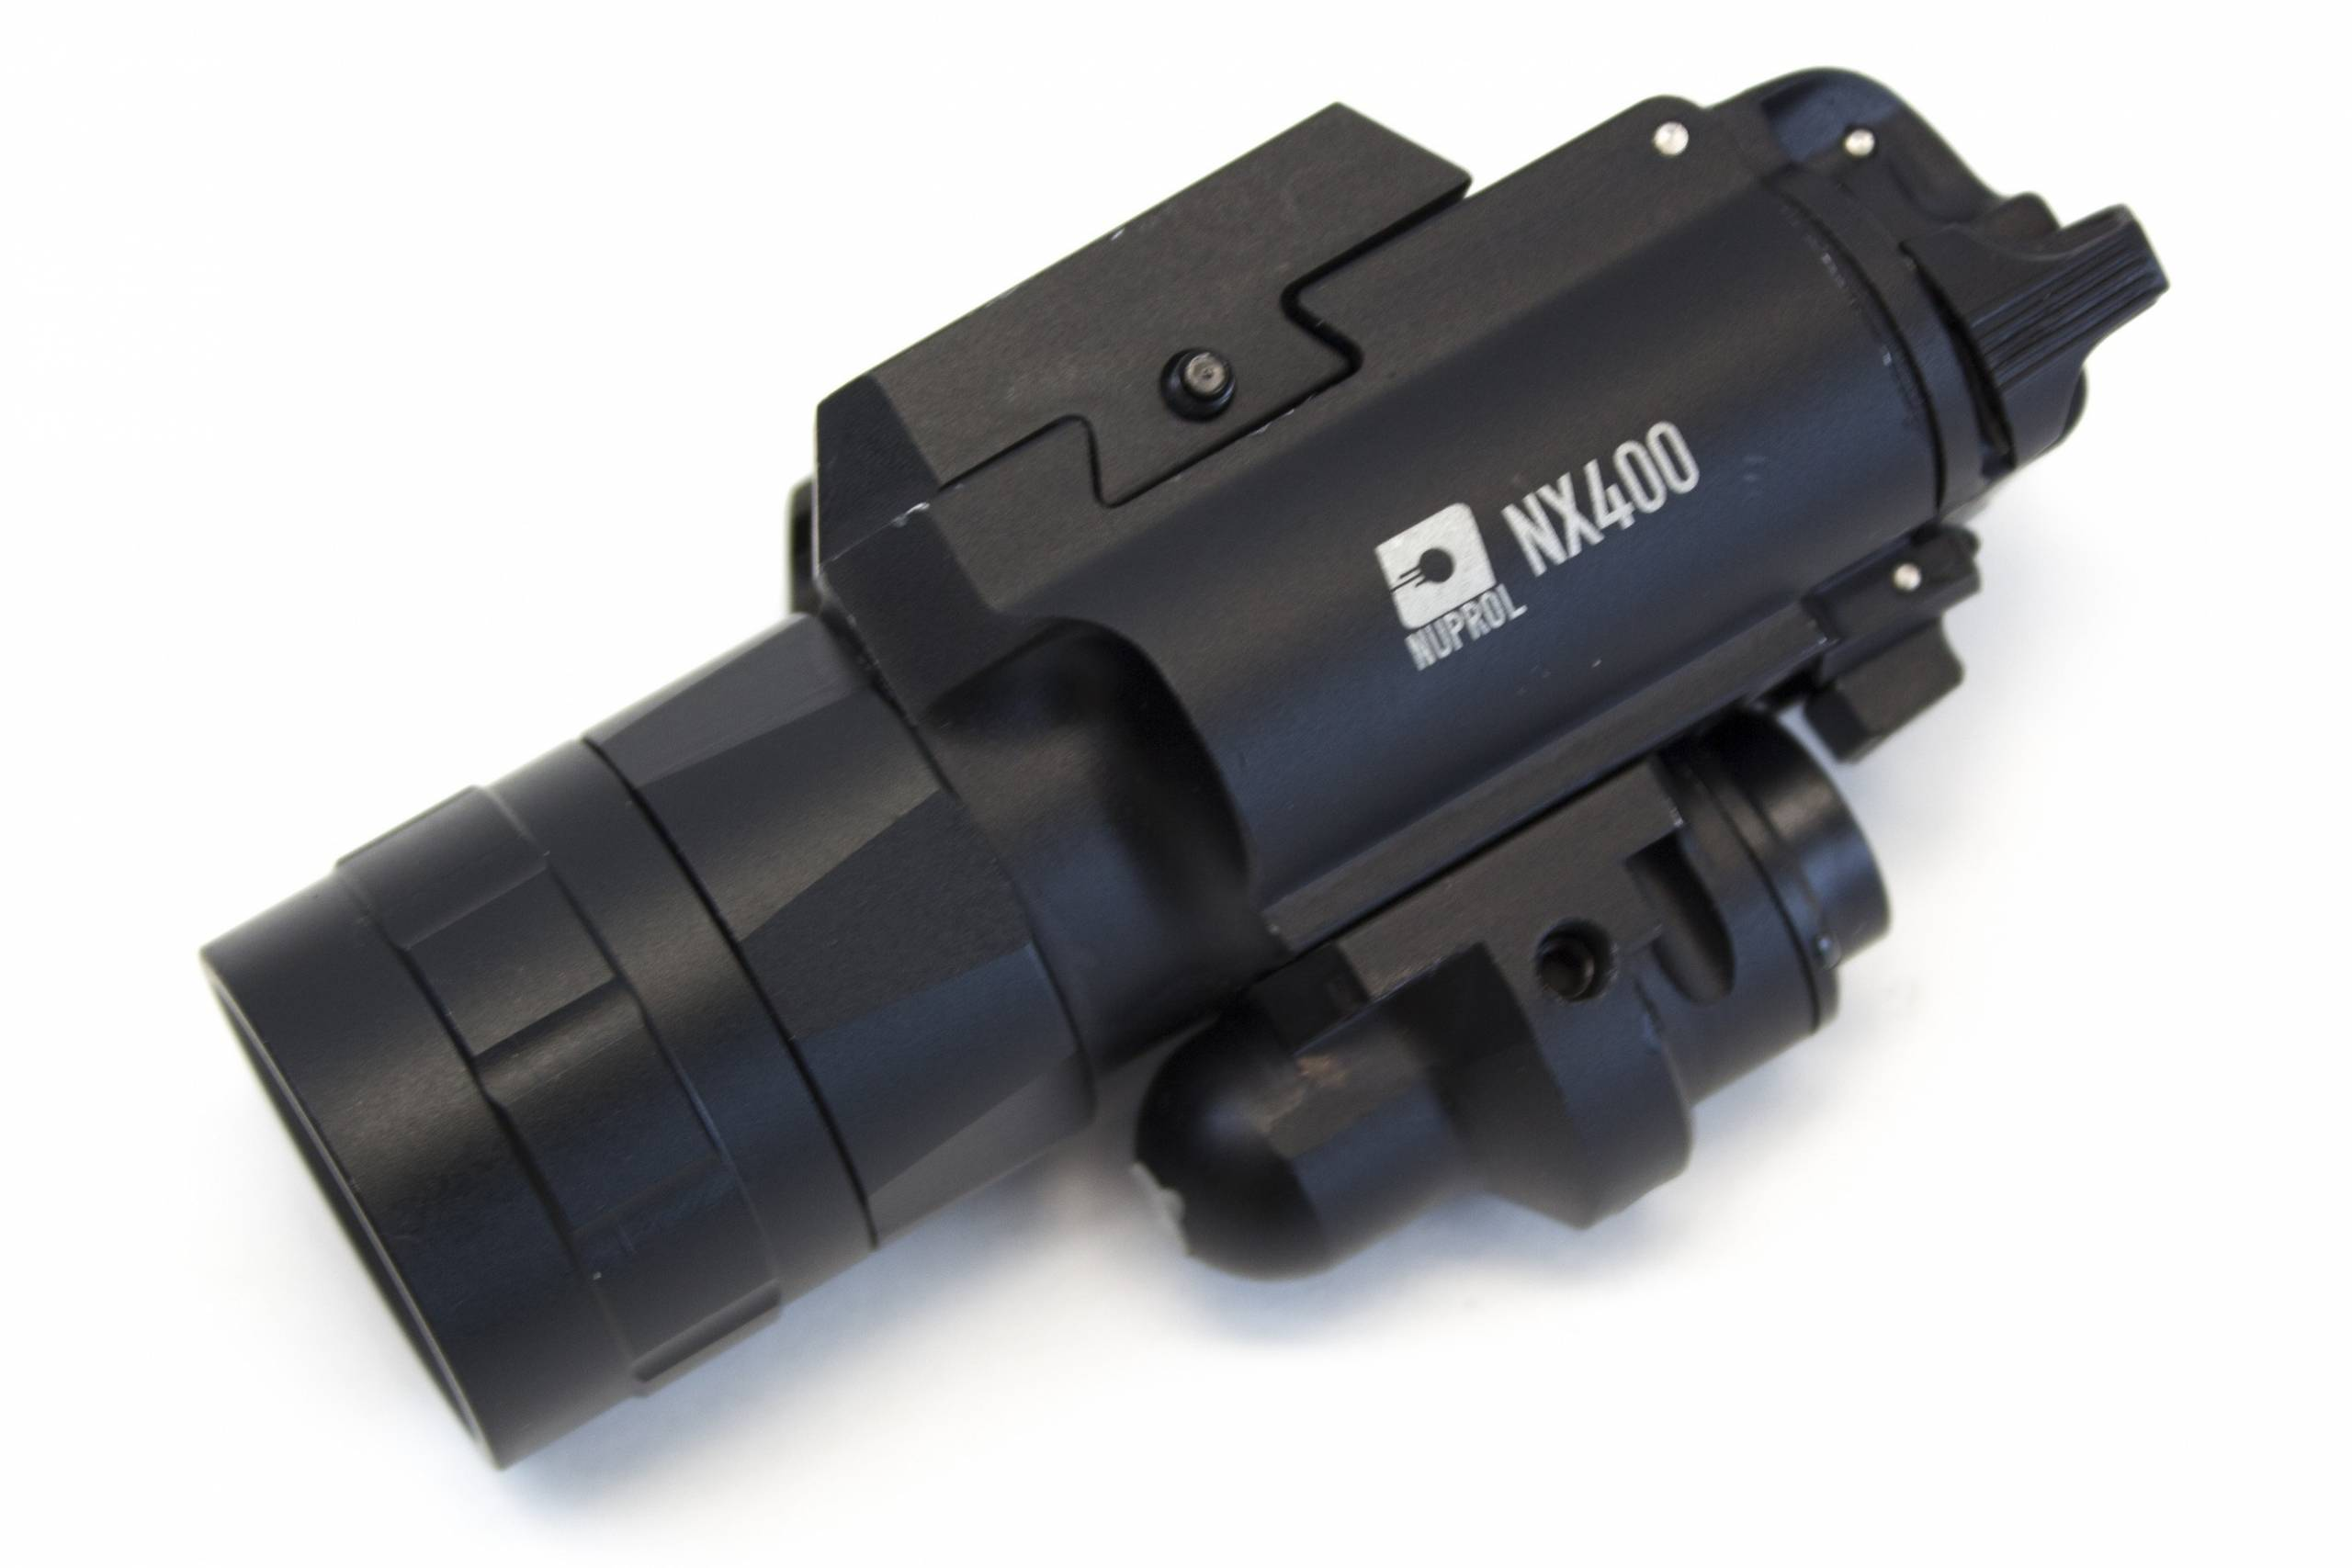 Nuprol NX400 Pistol Torch and Laser product image